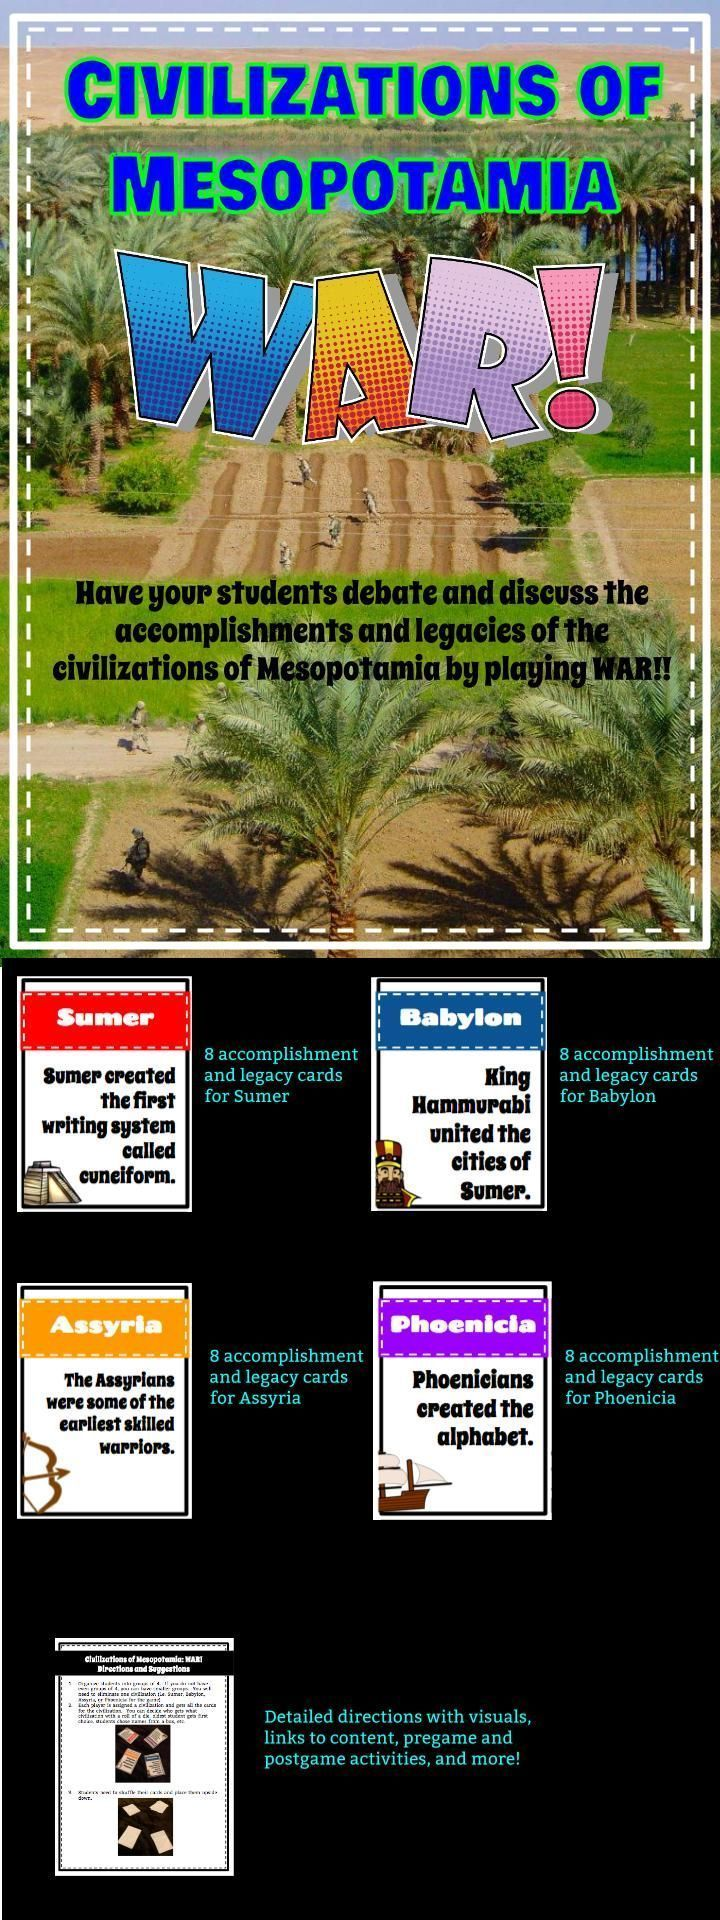 an analysis of the ancient egyptian and mesopotamian cultures Essay - compare/contrast mesopotamia and egypt directions: you have to write or type a five-paragraph essay comparing/contrasting the egyptian and mesopotamian/sumerian civilizations.